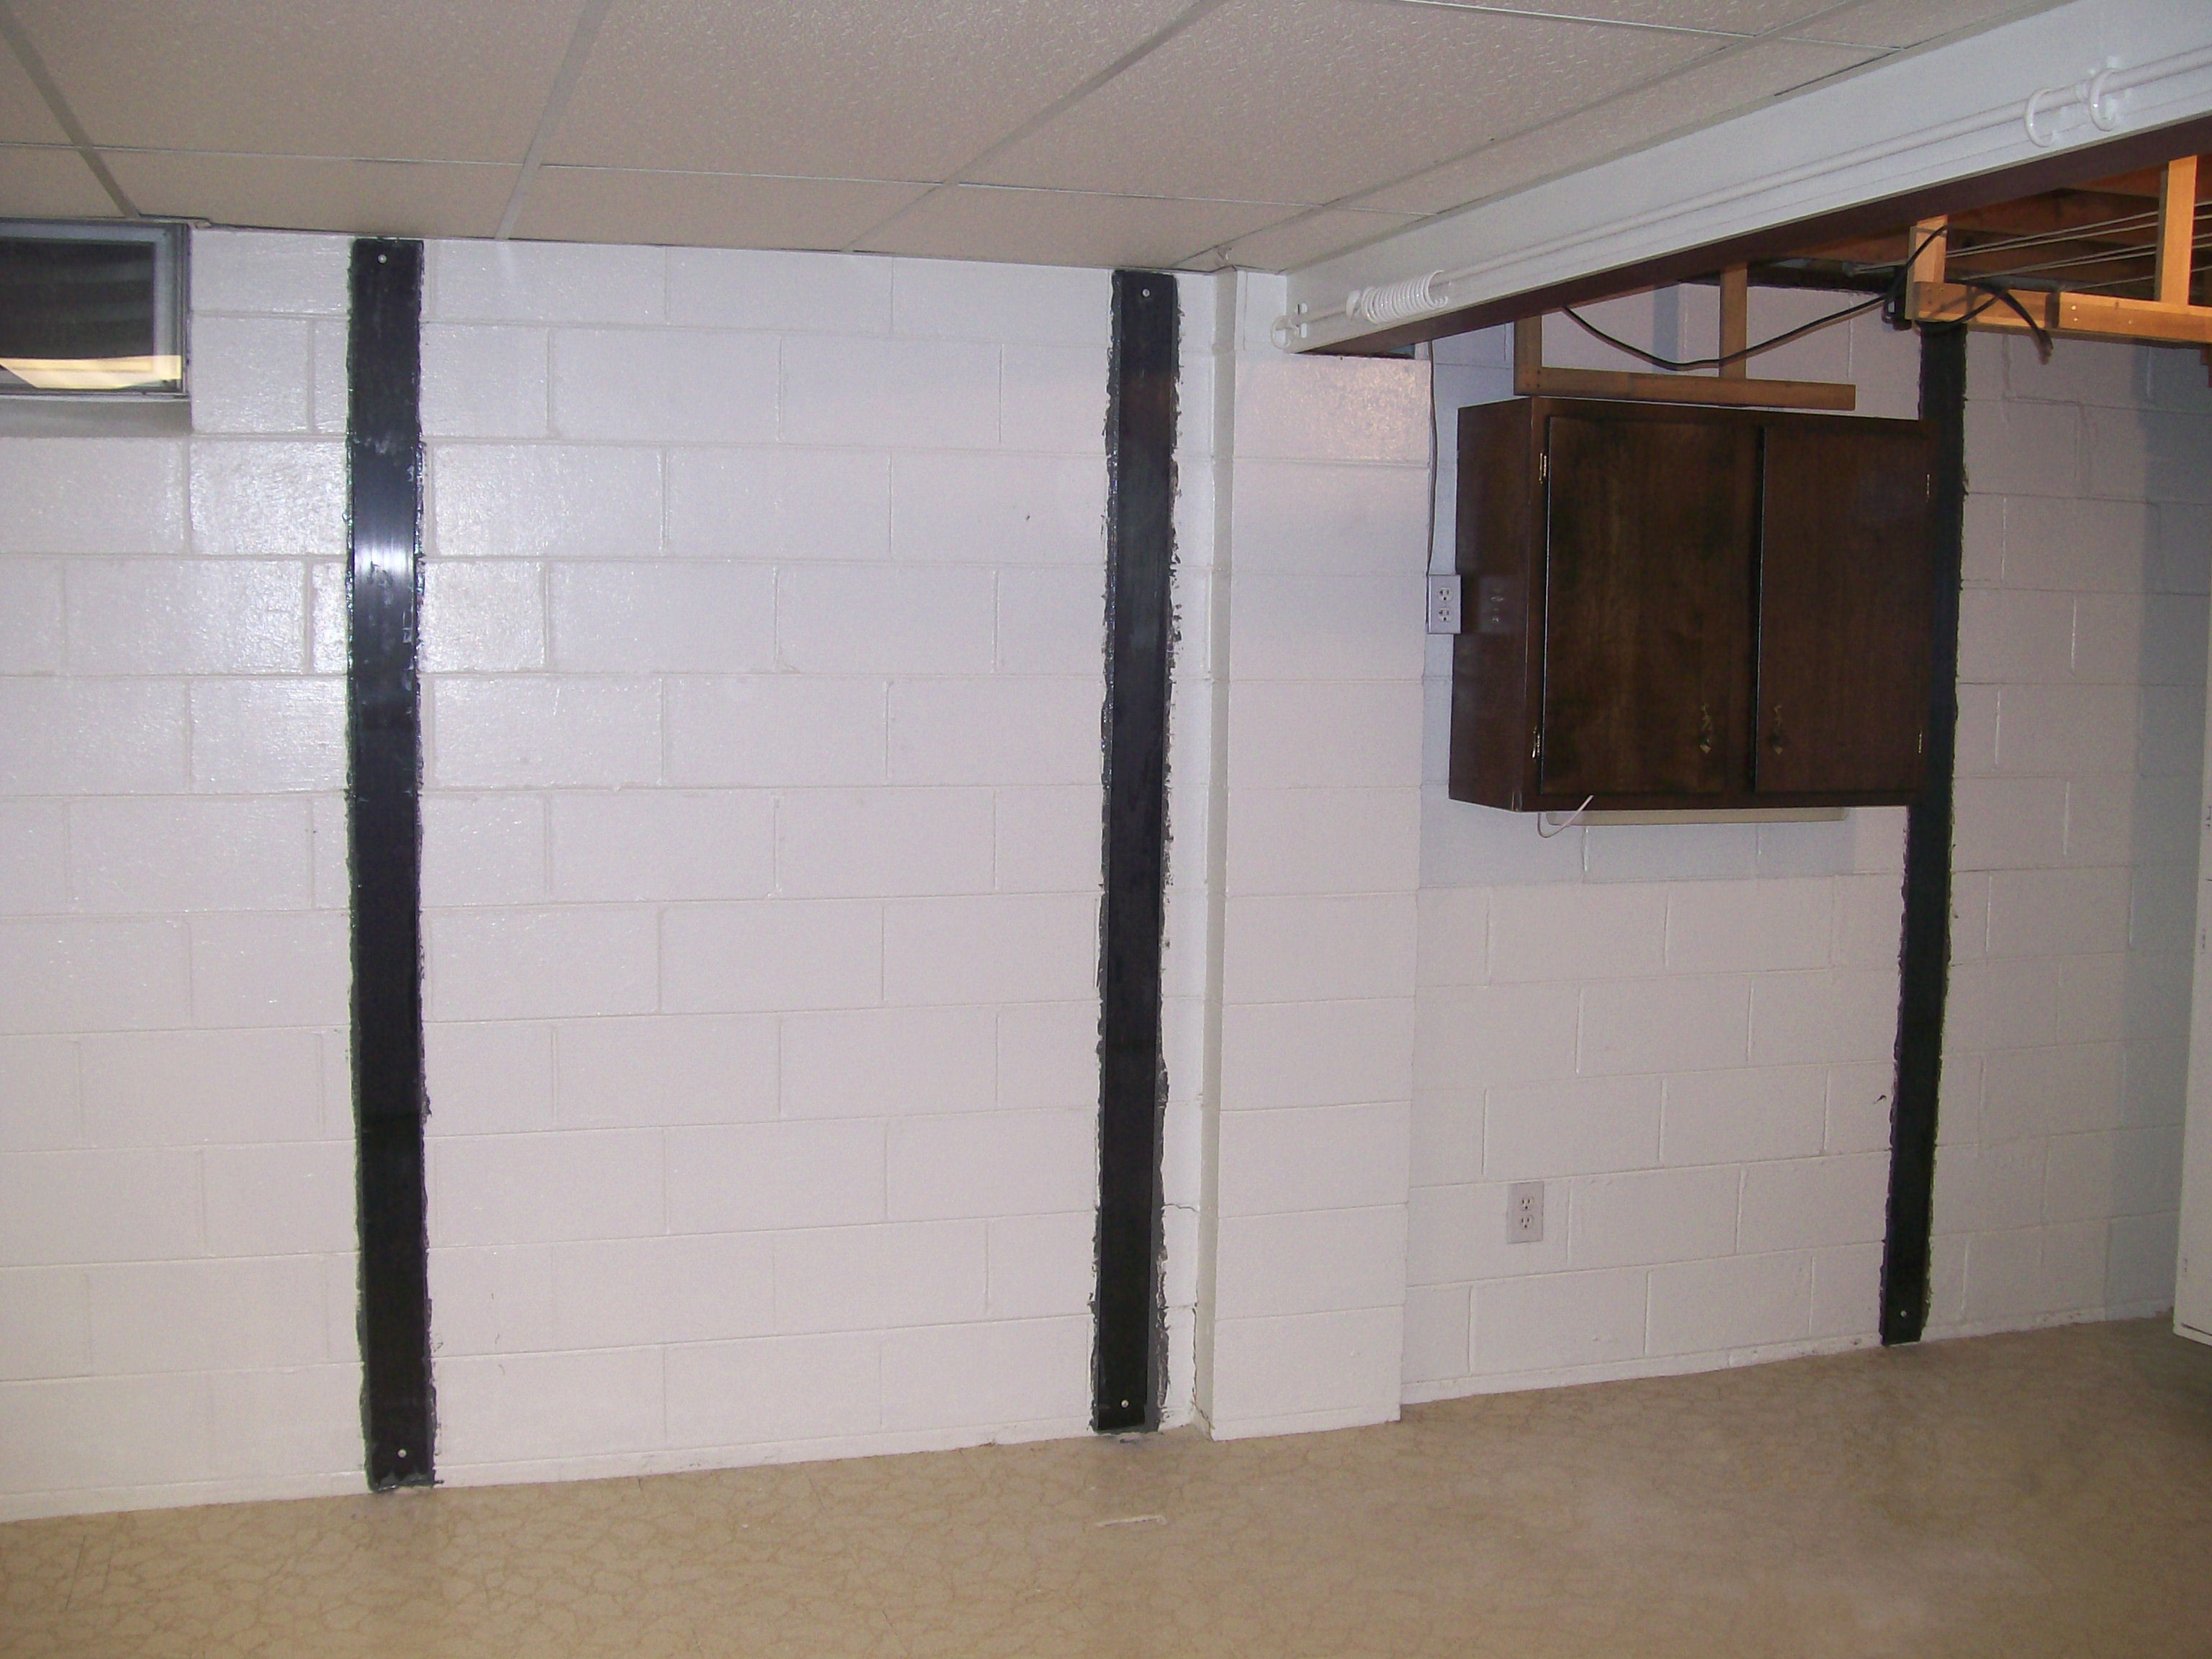 ... And Bowing Basement Walls. Carbon Fiber 1 Carbon Fiber 2 Carbon Fiber 3